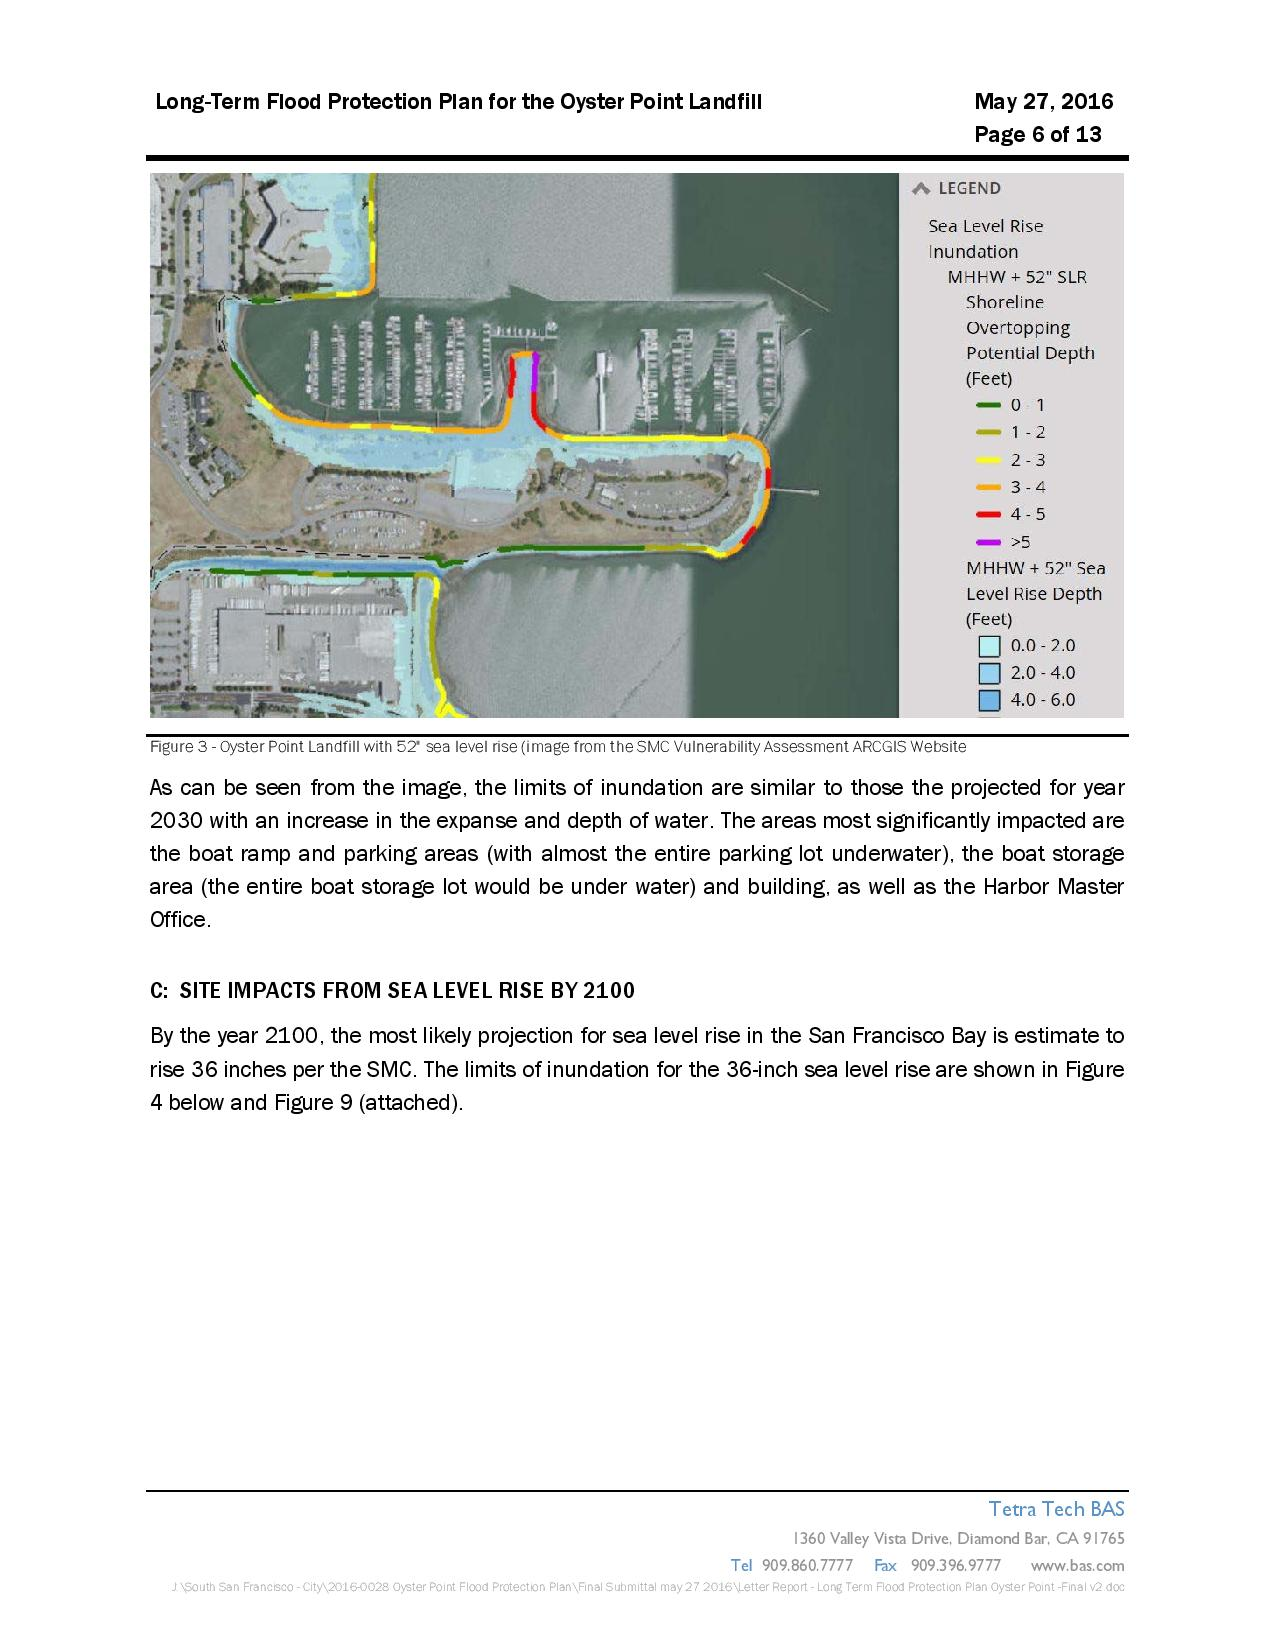 City of SSF Oyster Pt. Landfill Long-Term Flood Protection Letter & Plan-2-page-008